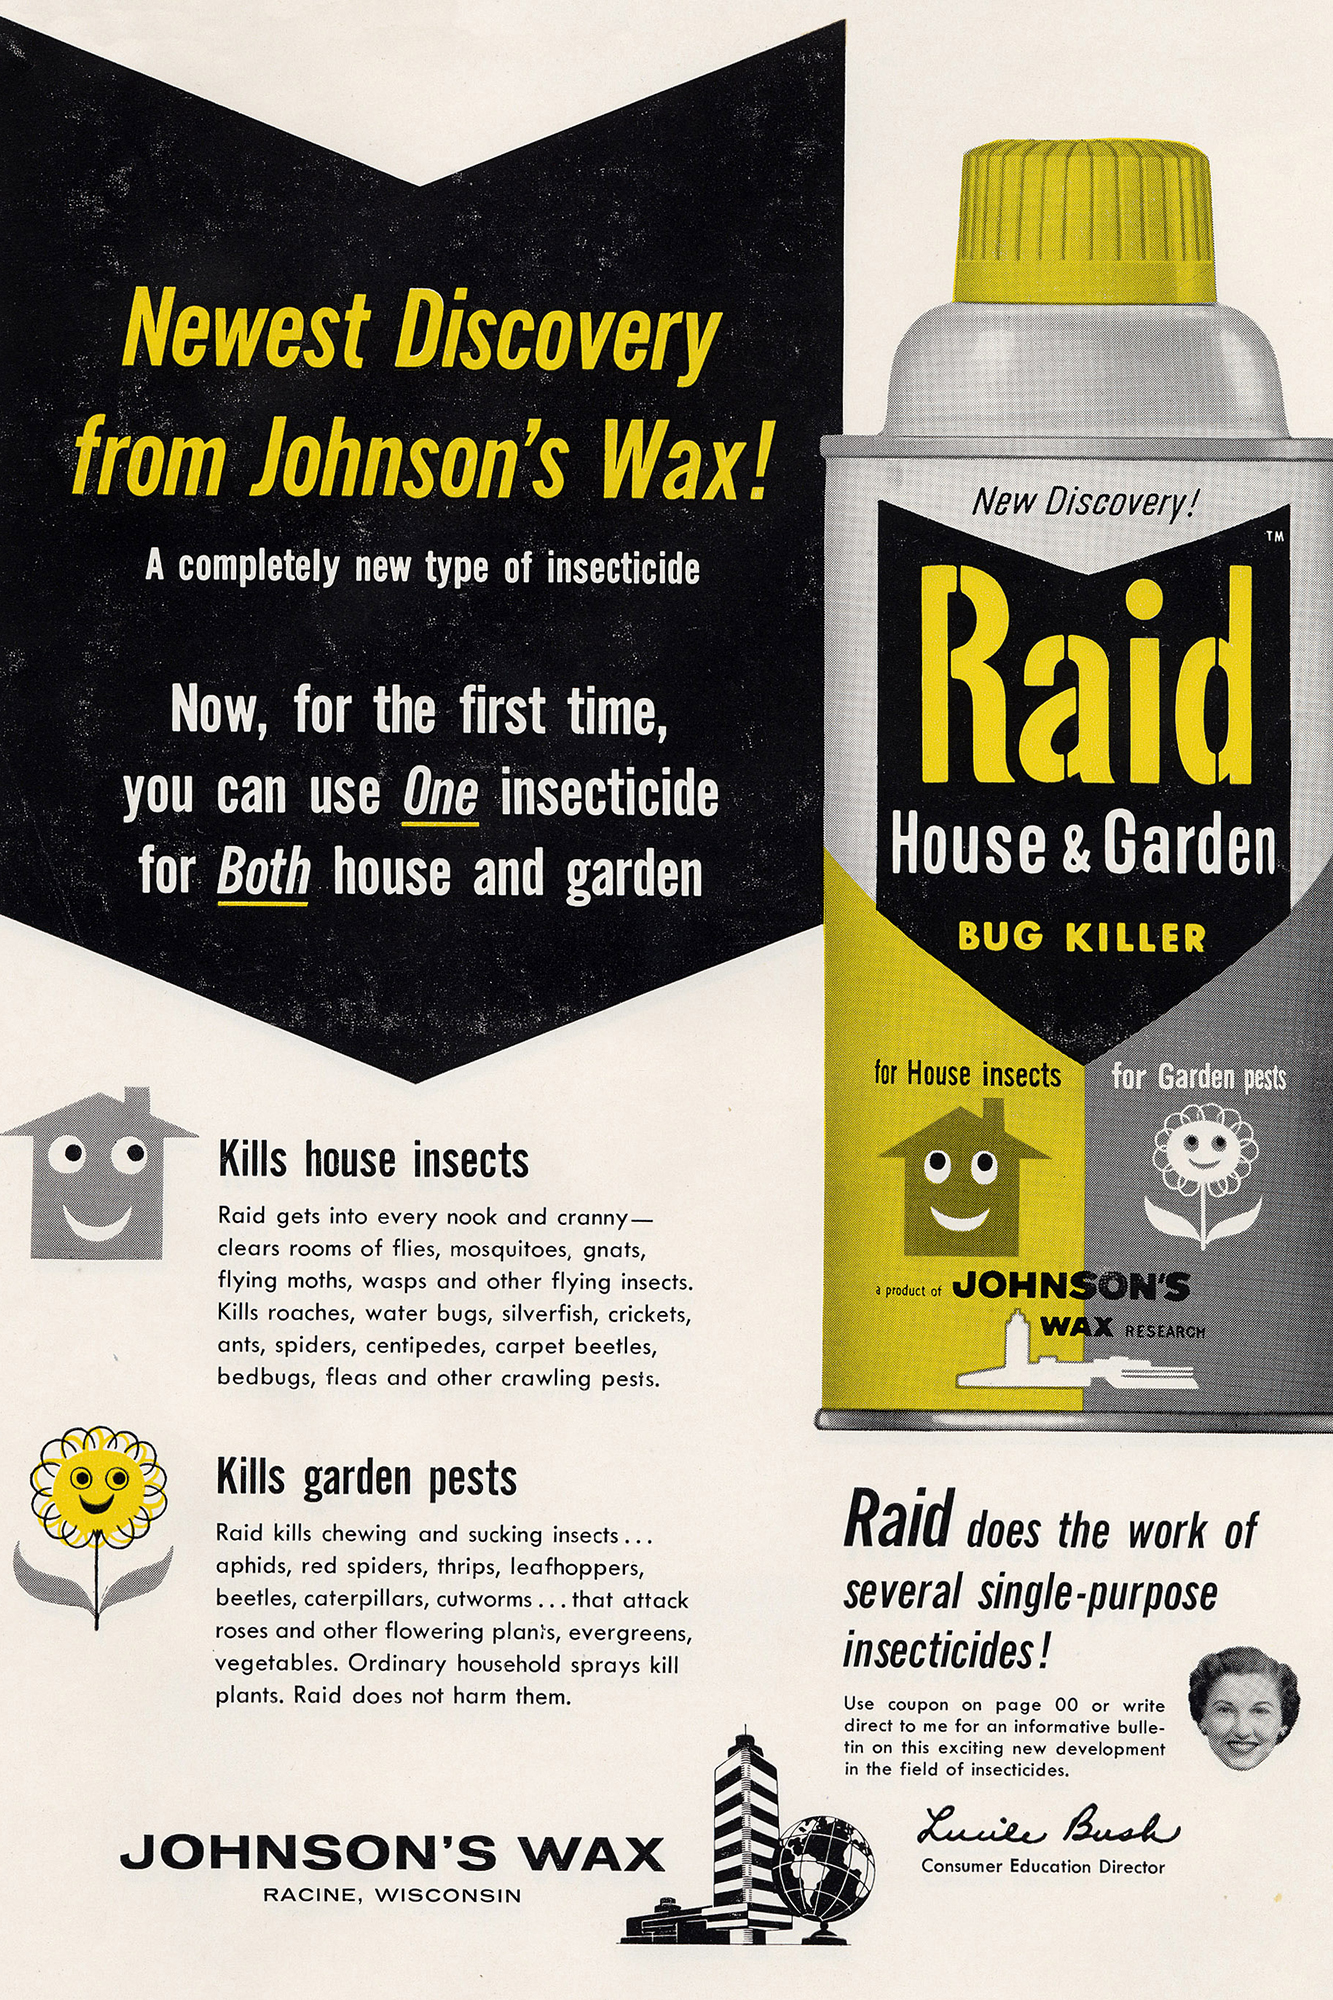 Johnson's Wax 1955 vintage ad for Raid bug spray